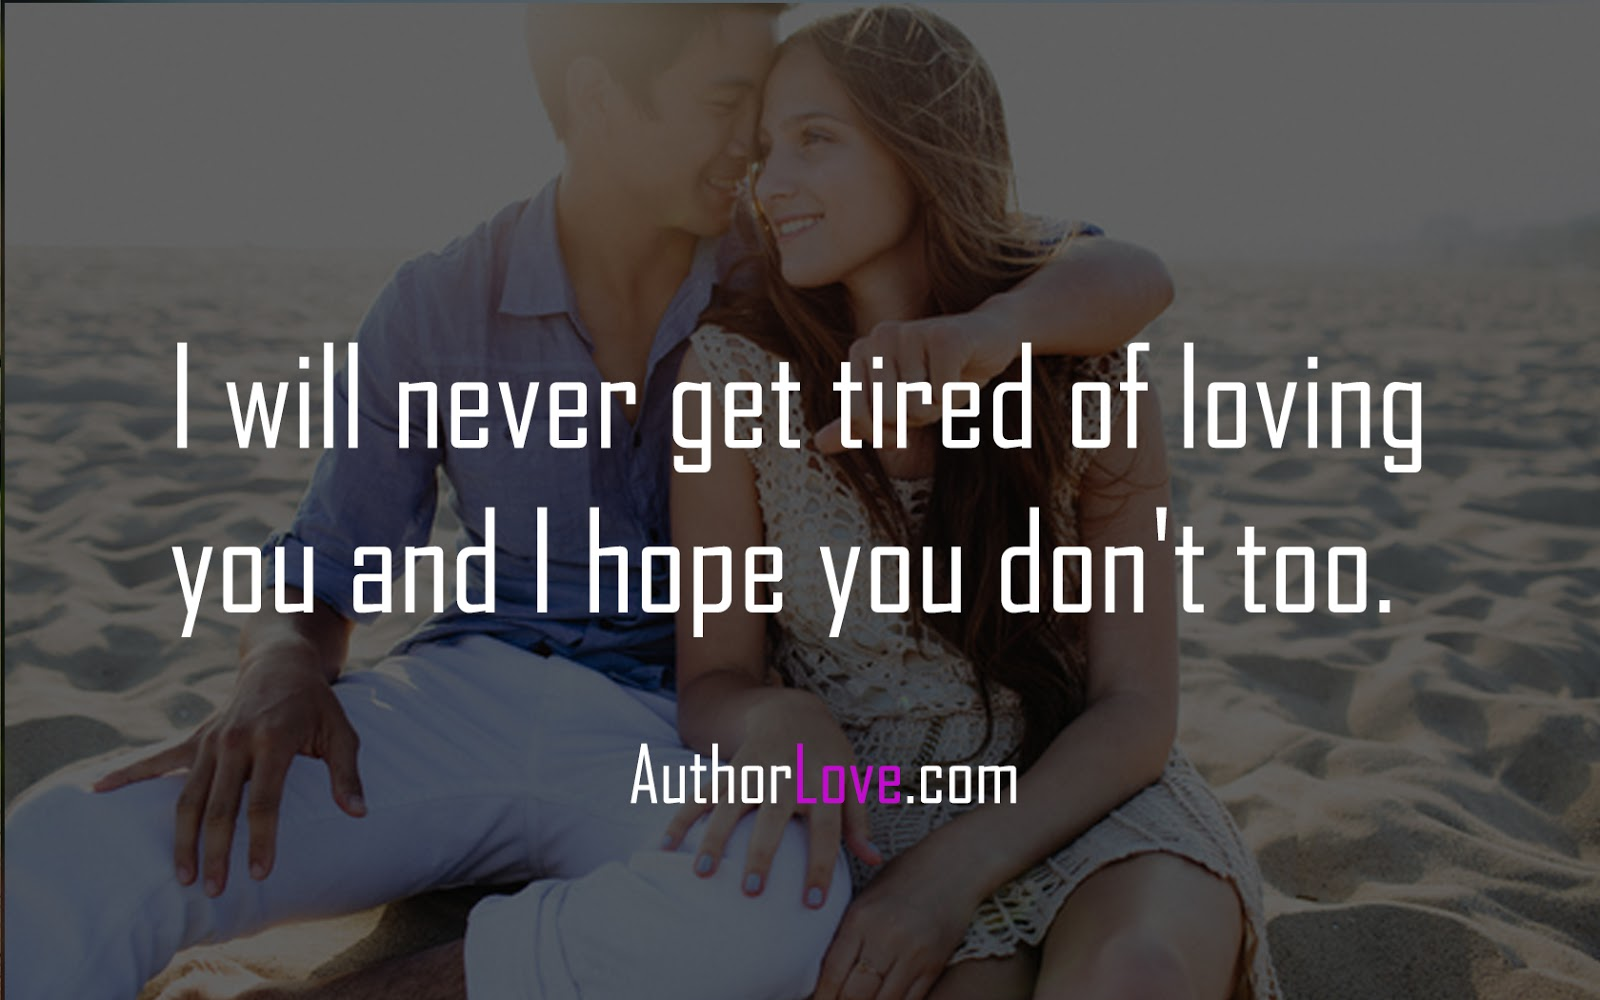 Lovingyou Quotes I Will Never Get Tired Of Loving You And I Hope You Don't Too .